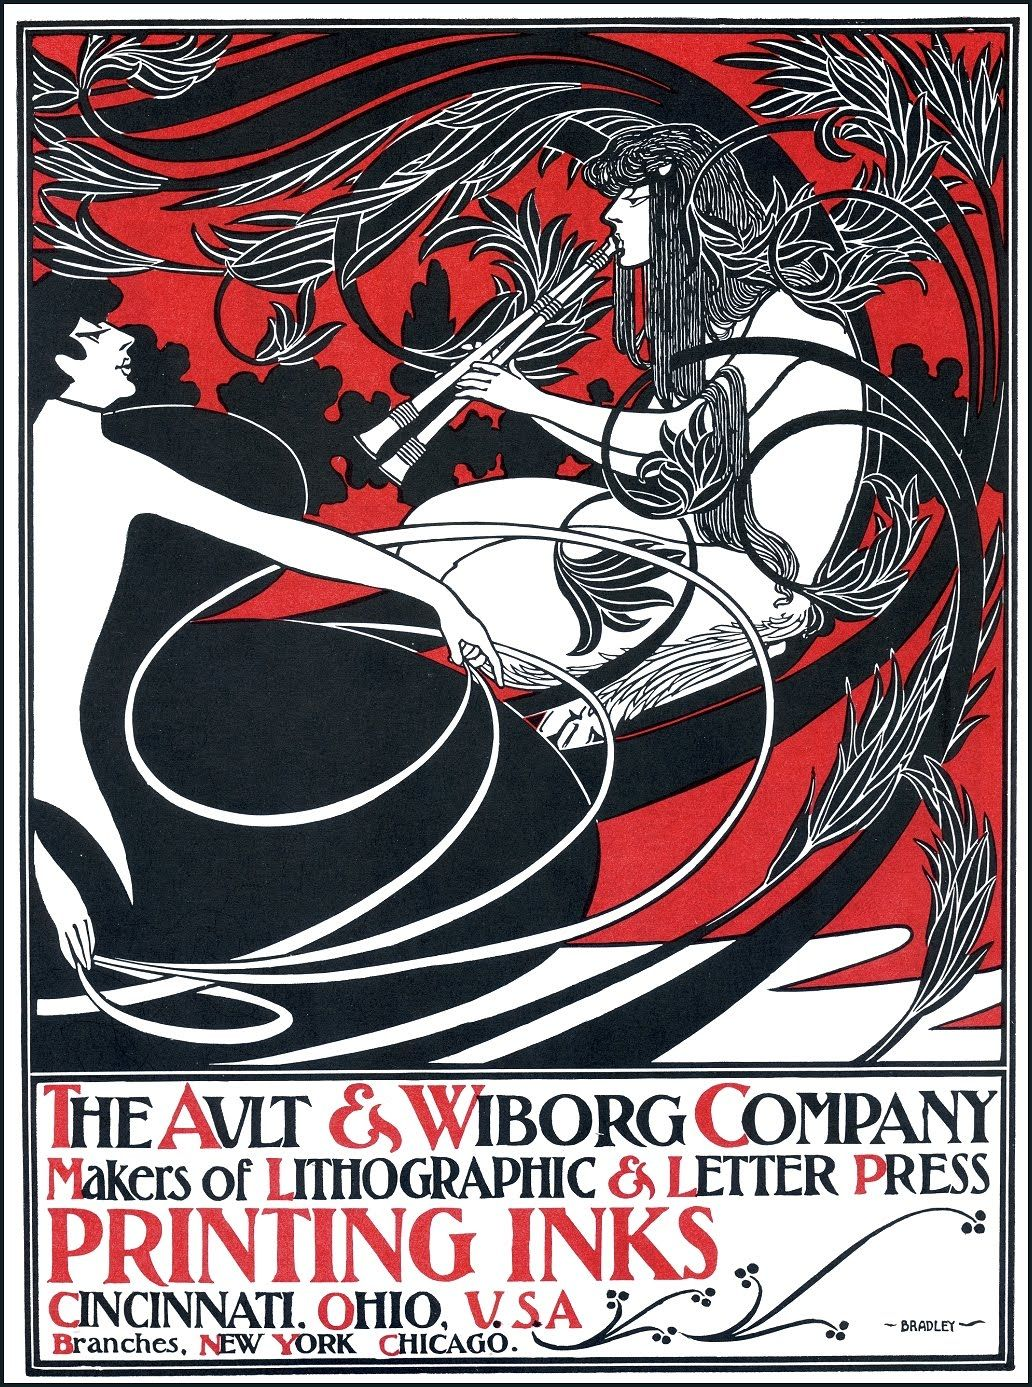 Poster design 1900 - The Ault Wiborg Company Poster William H Bradley 1900